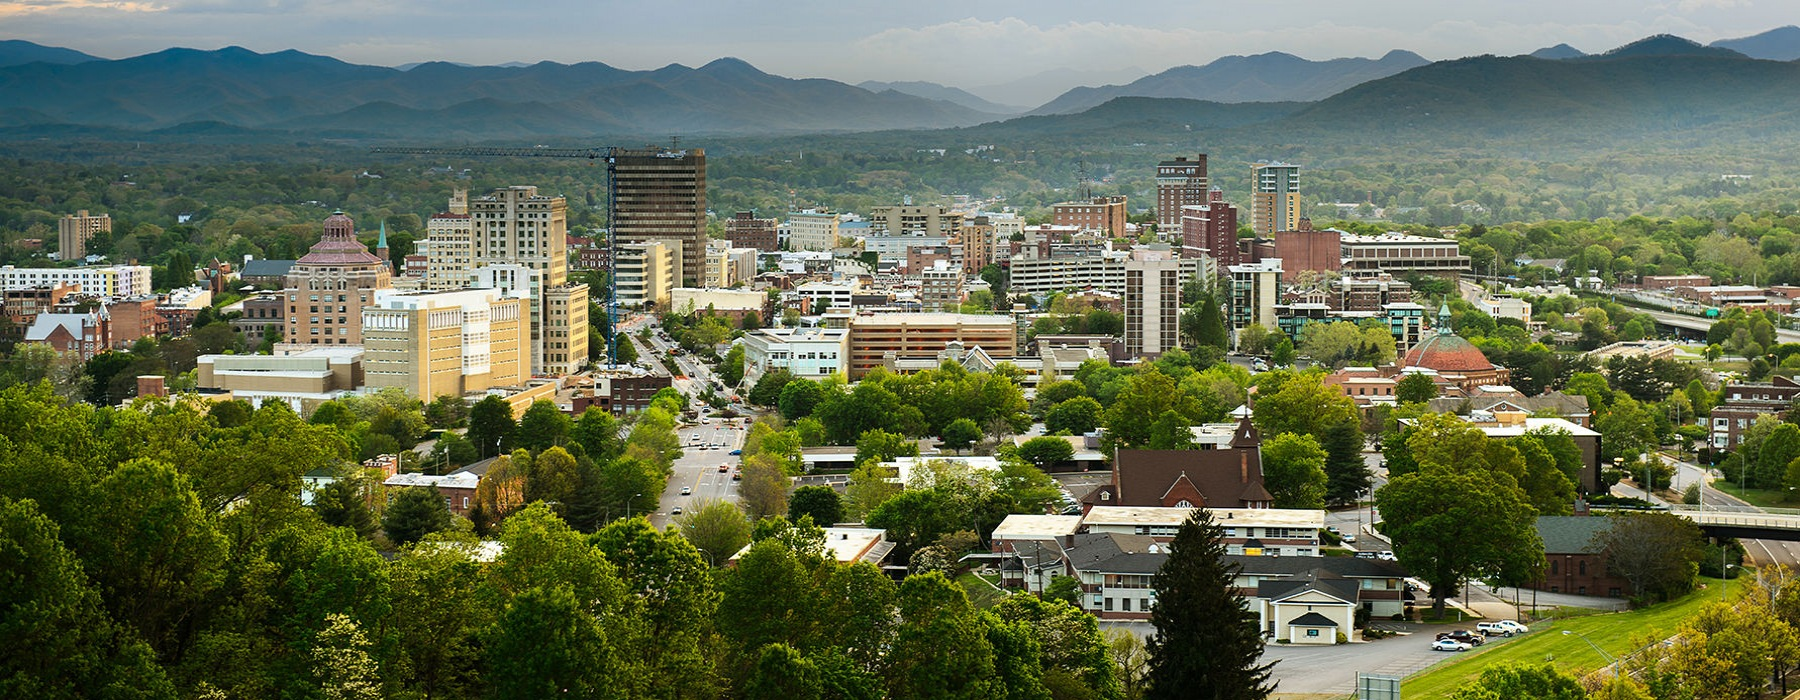 Beautiful nearby Asheville with mountains in the background